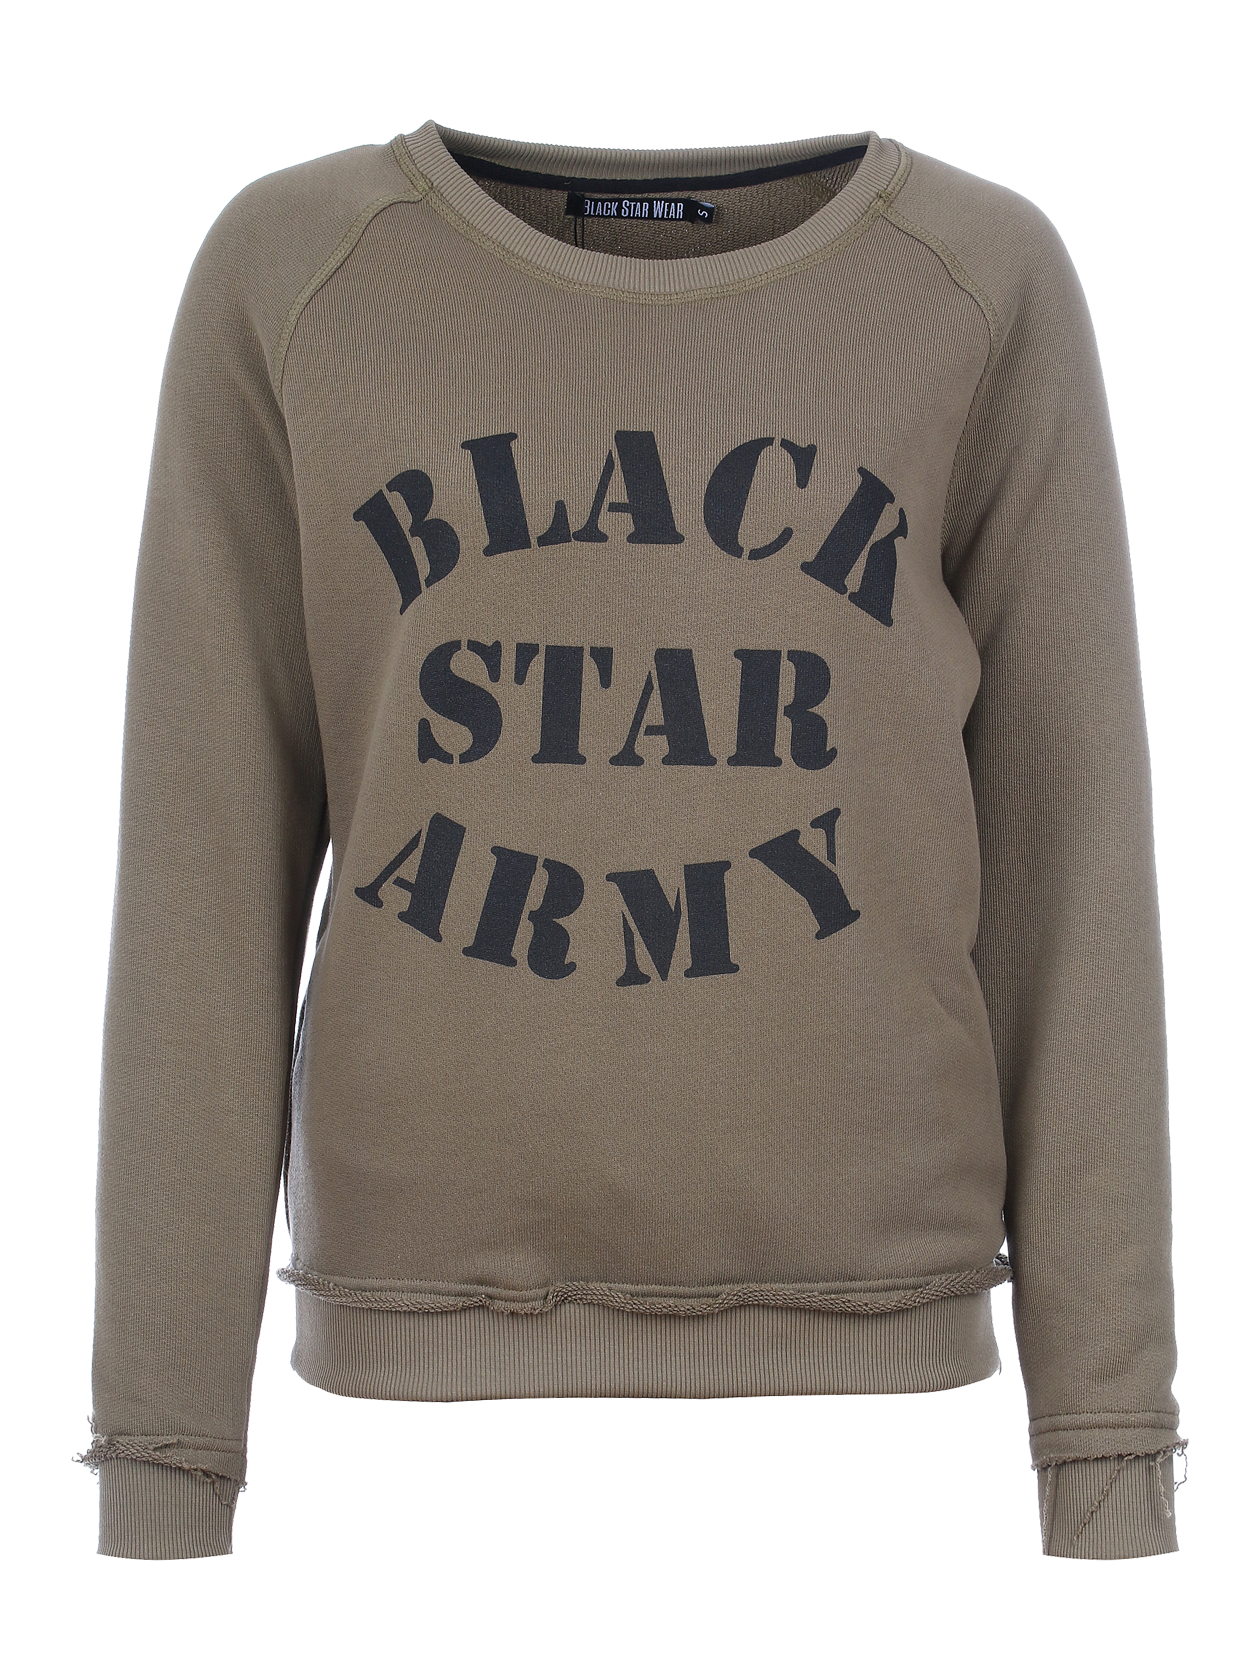 Womens sportsuit Black Star ArmyWomens sweatshirt and sweatpants set by Black Star Wear. Sweatshirt with o-neck, cuffs, big print Black Star Army. Sweatpants with side pockets and and Black Star Army print on the right side. Regular fit, natural cotton. Avaliable in khaki. Military style with raw cut elements.<br><br>size: L<br>color: Khaki<br>gender: female